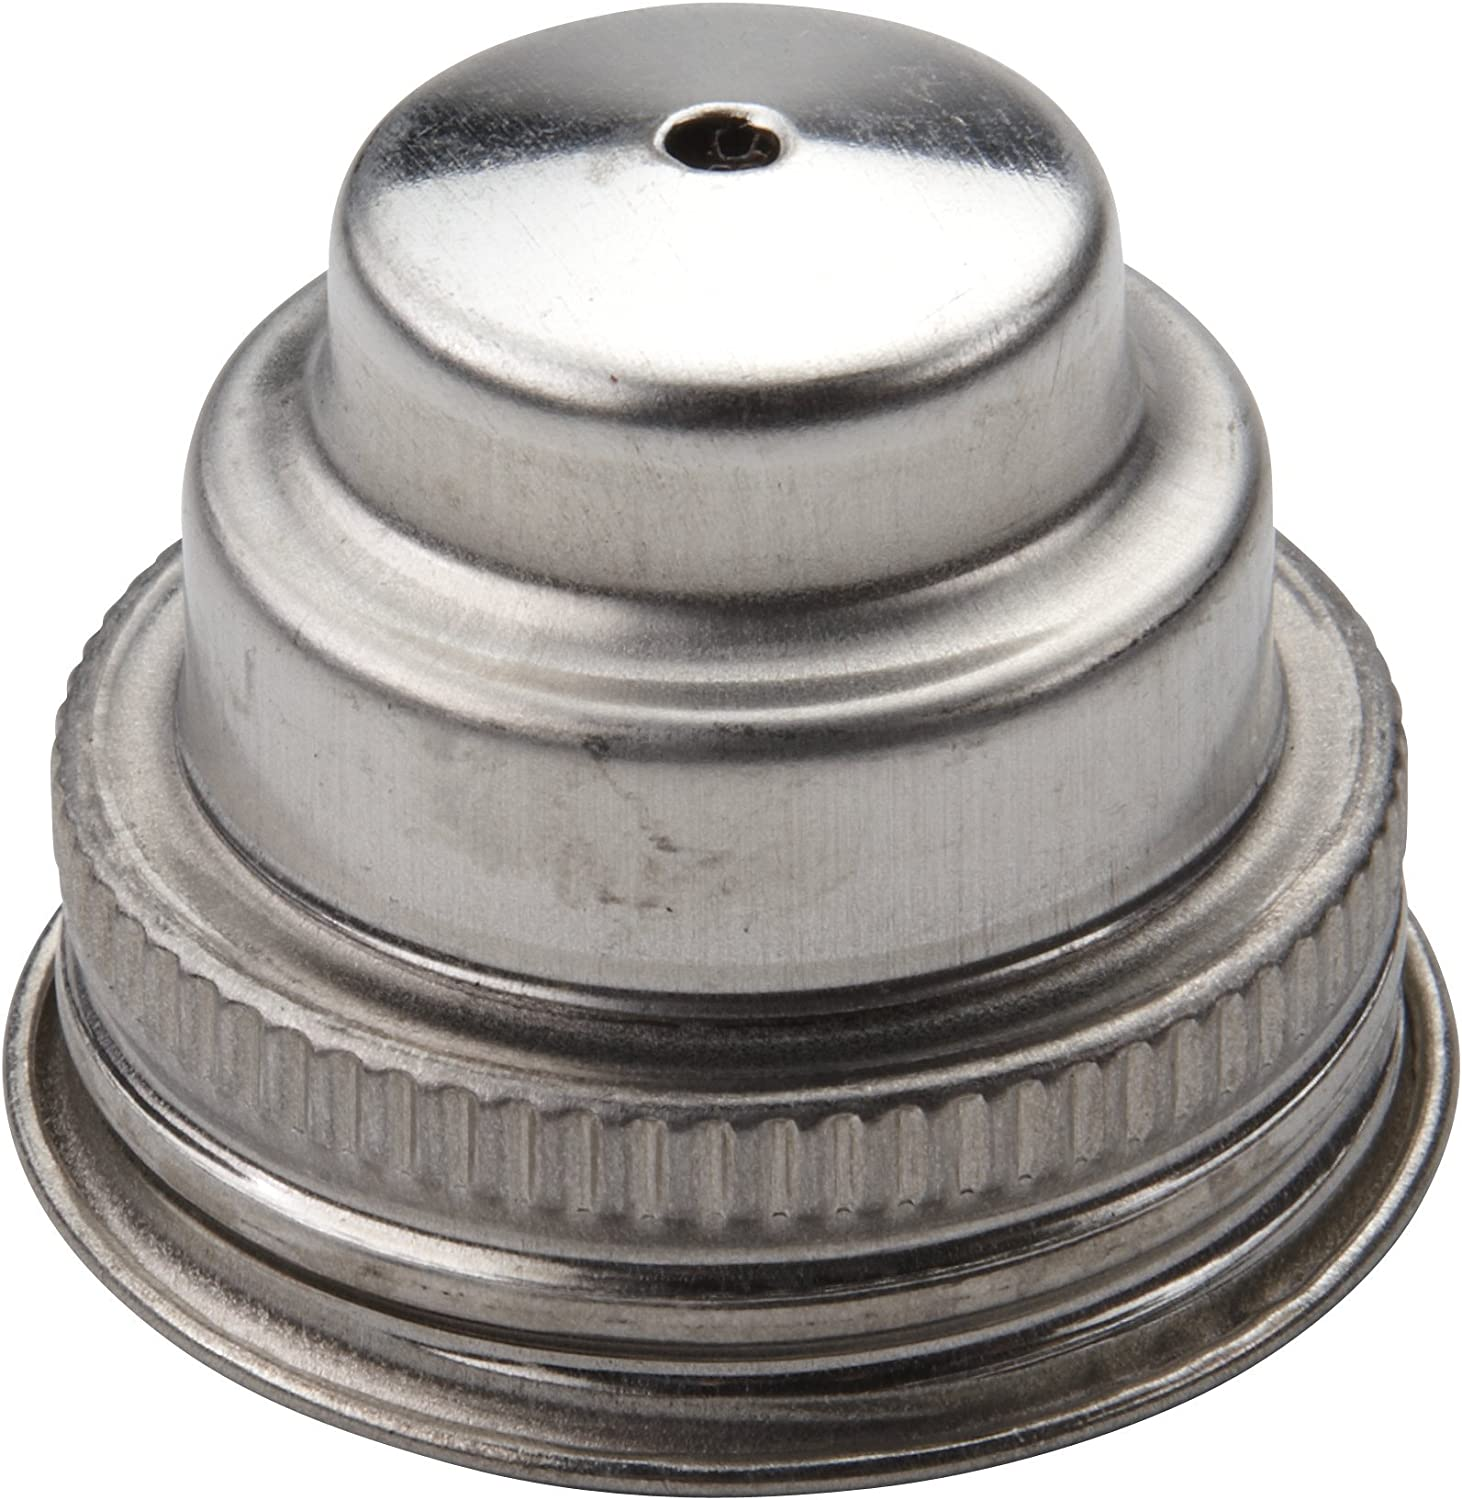 Briggs & Stratton 394818S Fuel Tank Cap For 4-11 HP Engines